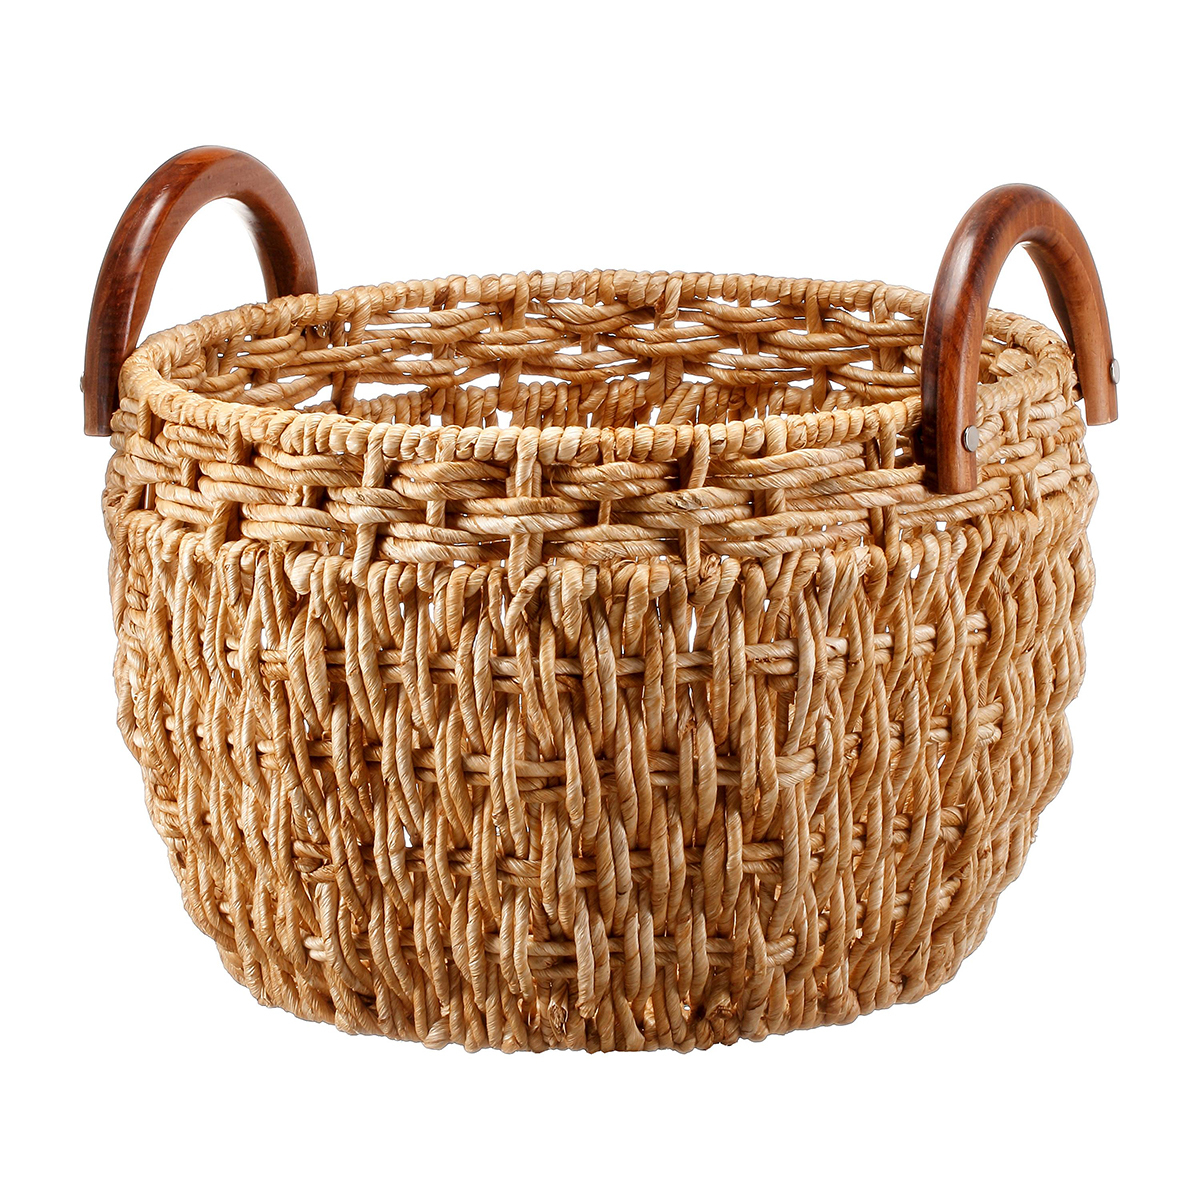 Classic wicker basket that provides some stylish storage. photo